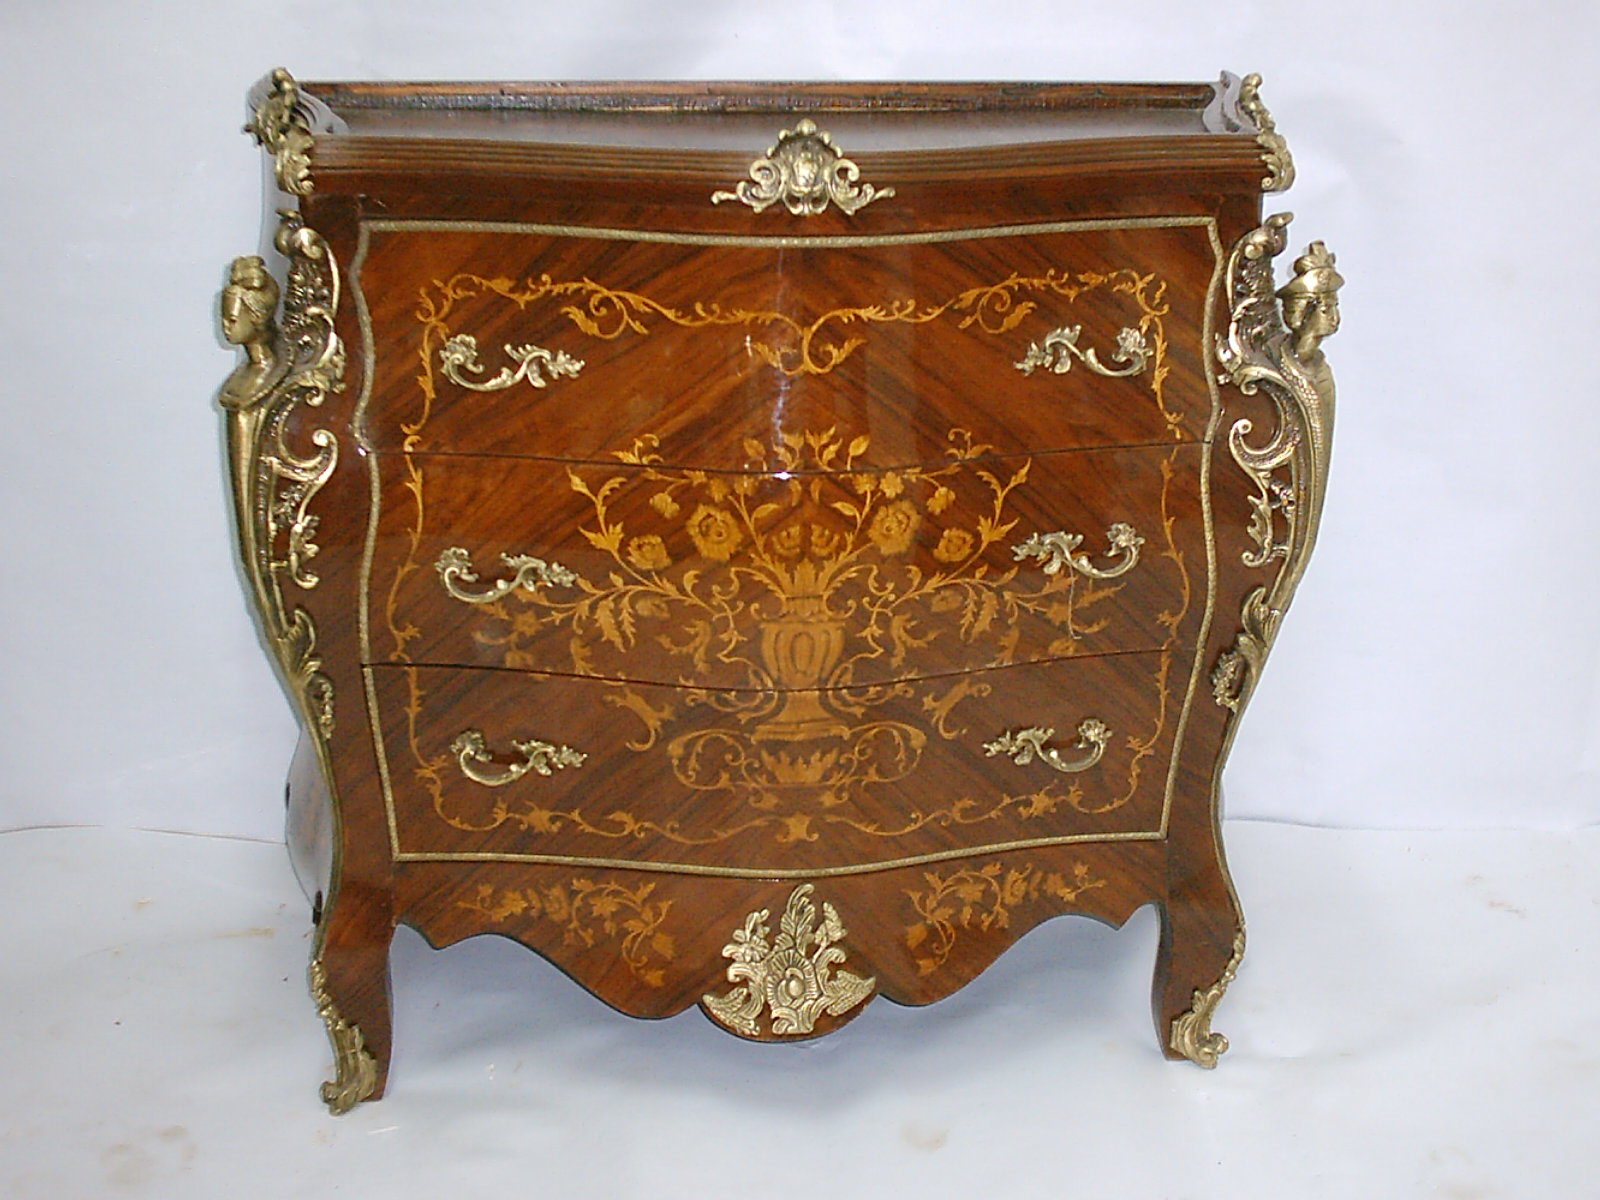 French Antique Louis Xv Style Marquetry Commodes With Marble Top 120cm